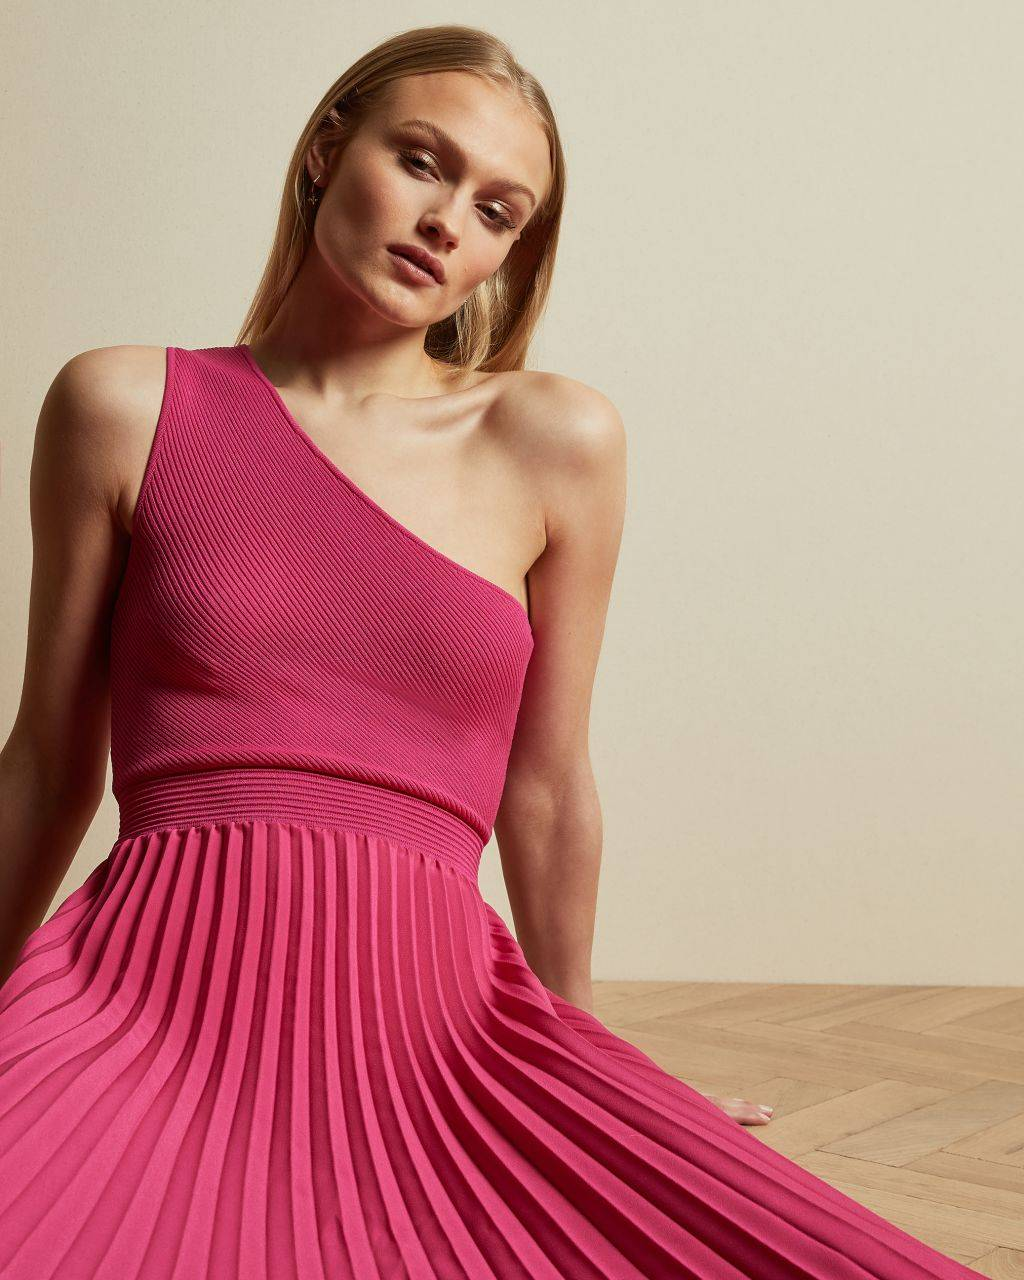 Ted Baker Asymmetric Knitted Midi Dress  - Bright Pink - Size:  3 (UK 12)